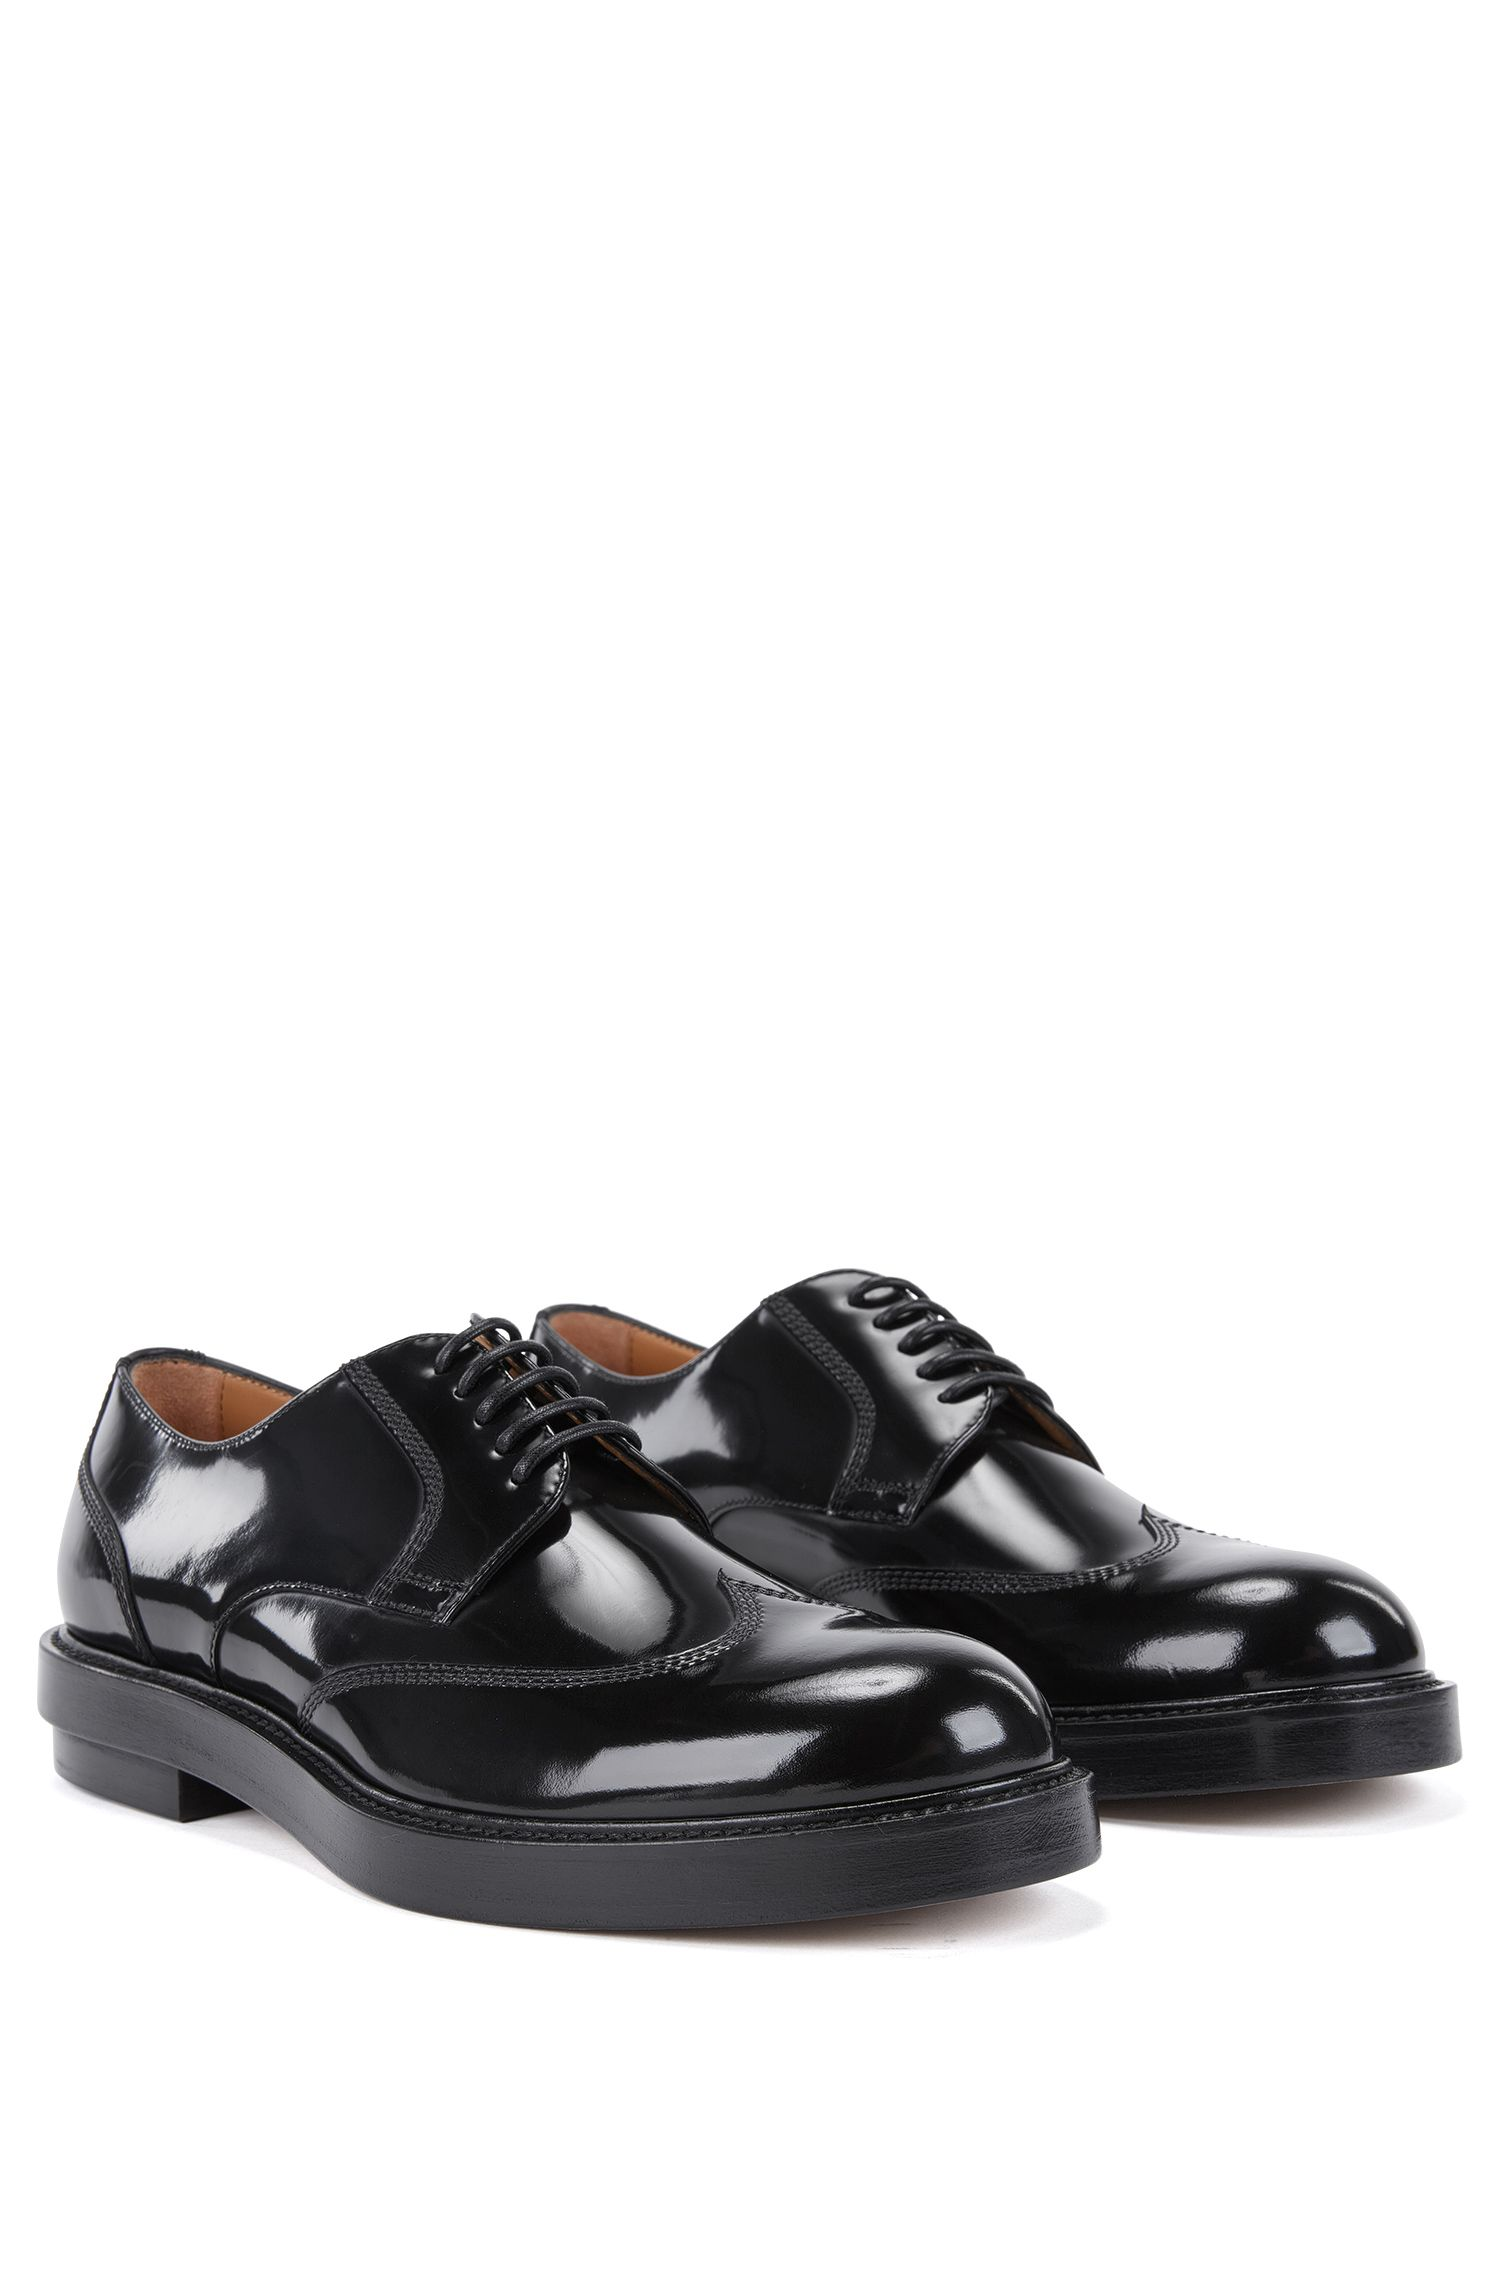 Wingtip Derby shoes in brush-off leather | 'Twister', Black